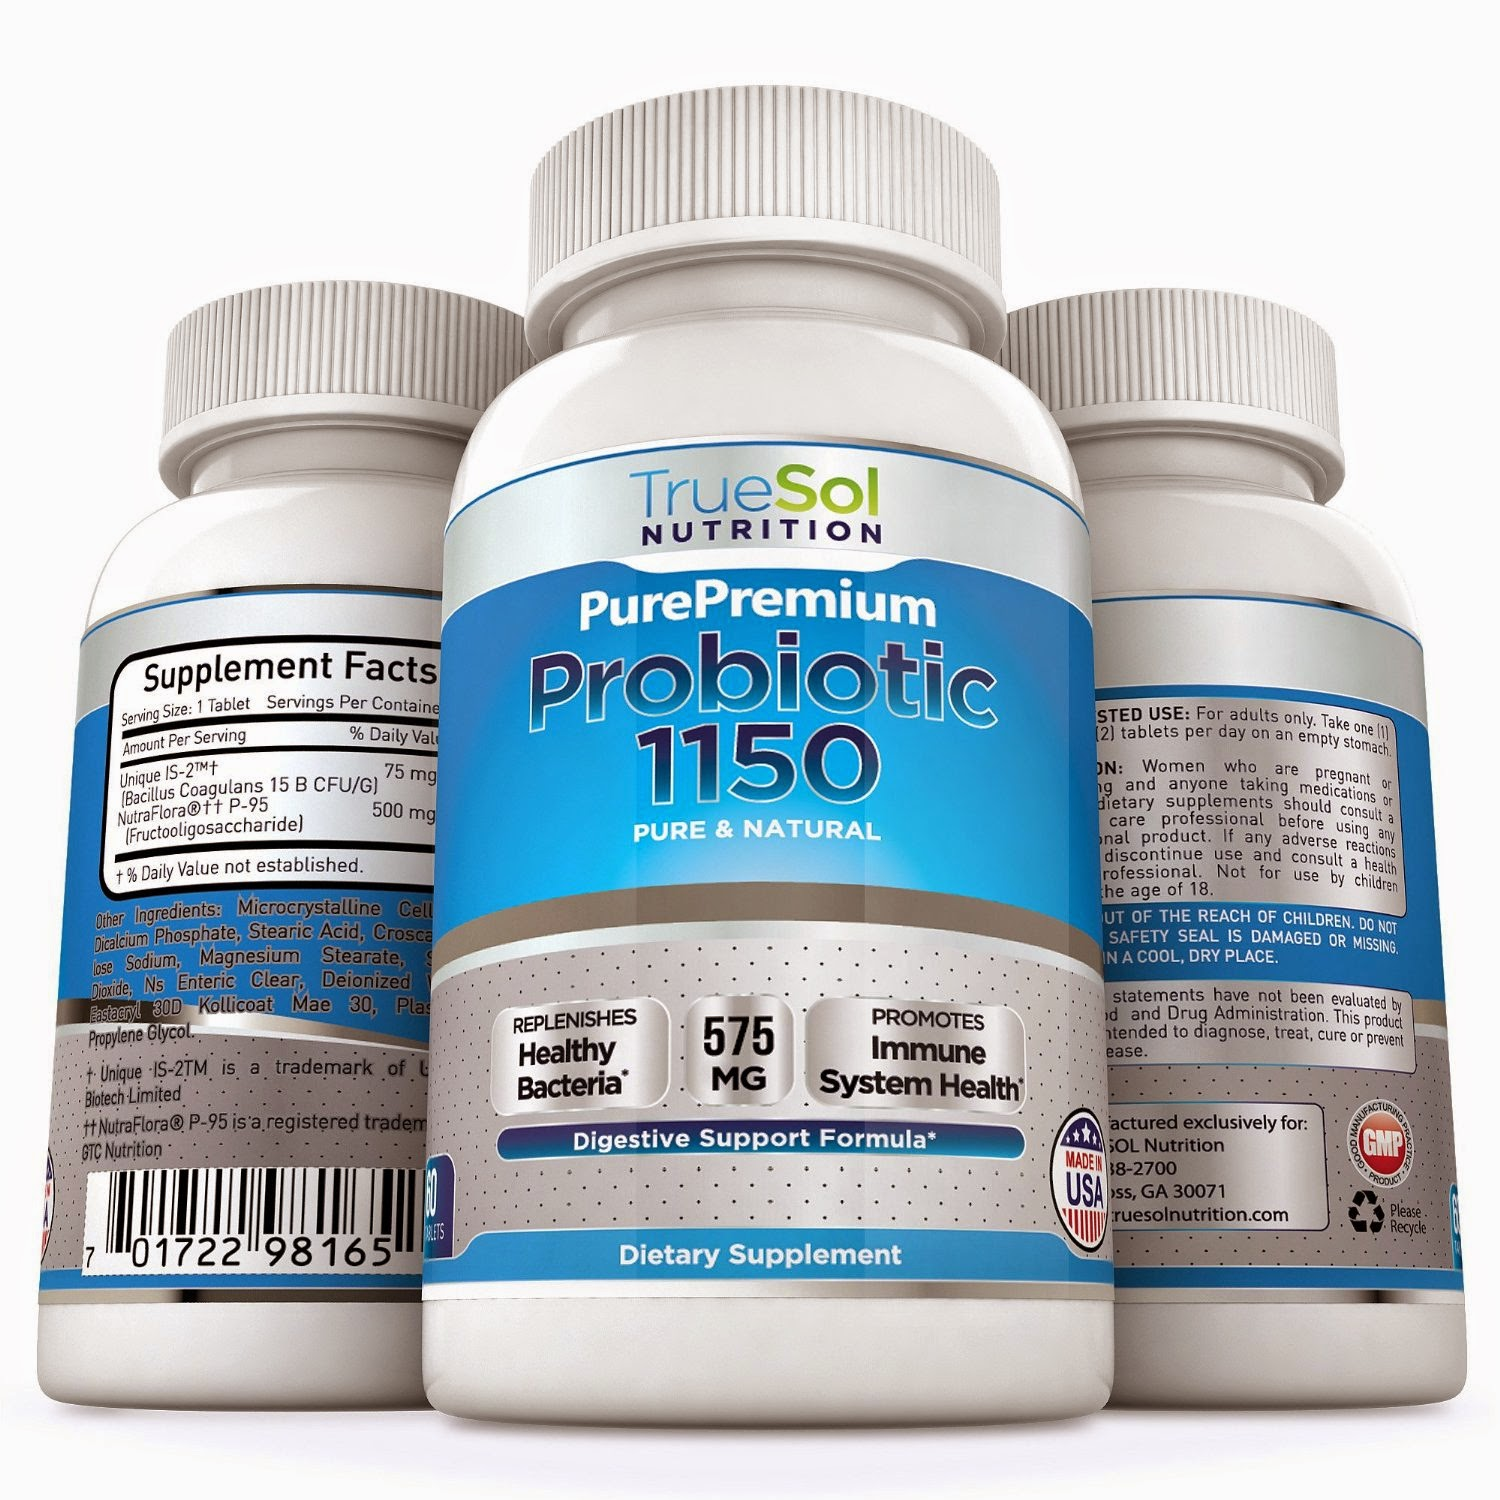 http://www.amazon.com/true-sol-probiotics-supplement-intestinal/dp/b00t52pmuc/ref=sr_1_1?s=hpc&ie=utf8&qid=1425415889&sr=1-1&keywords=probiotics